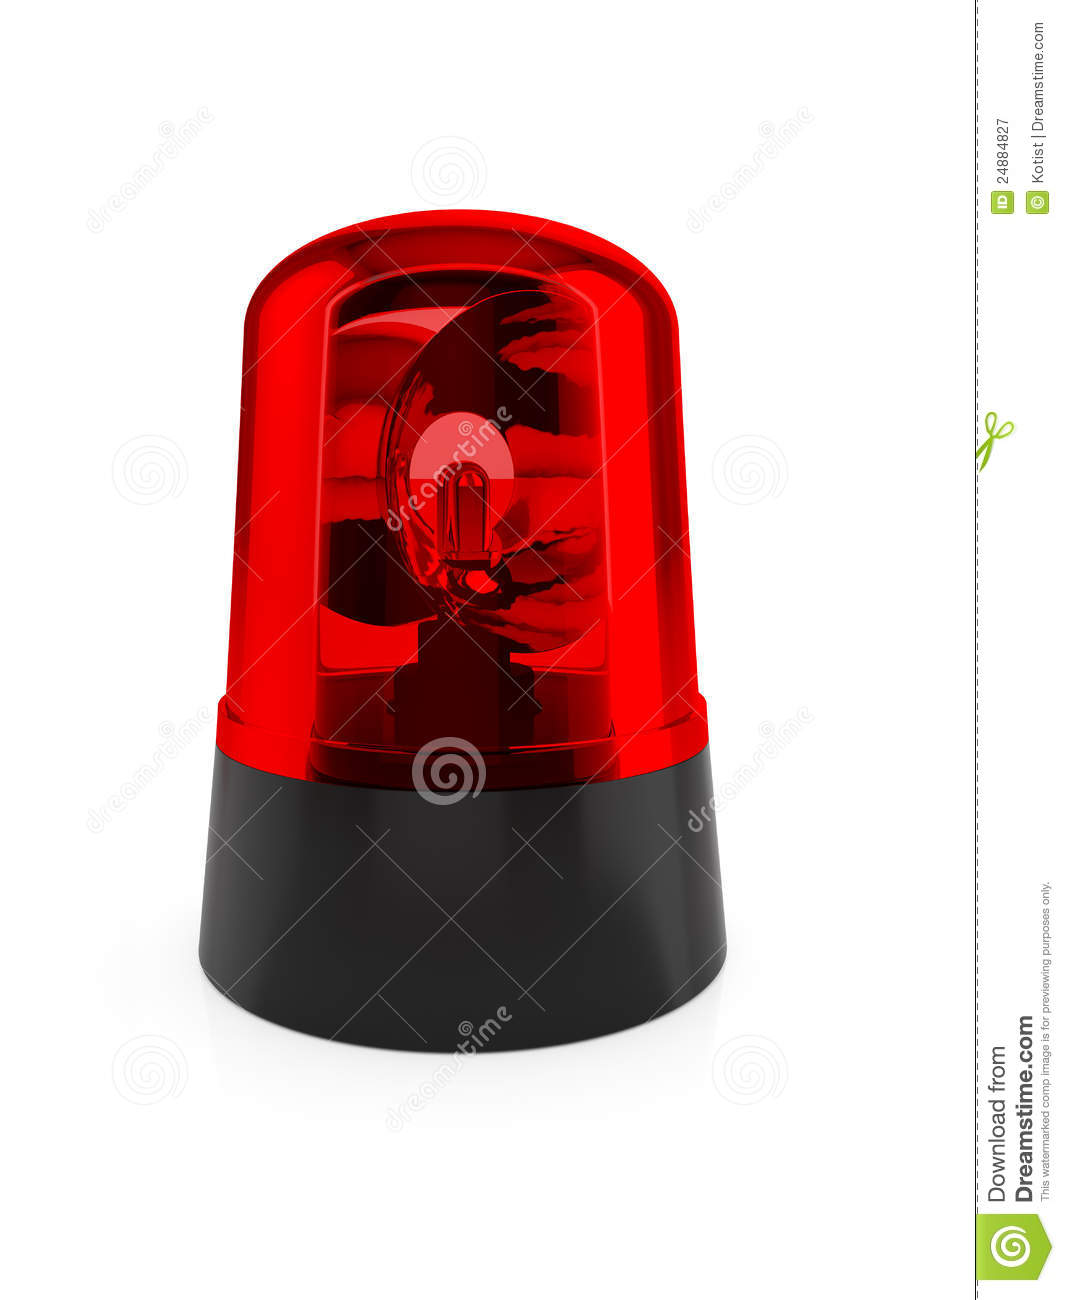 Red Flashing Light Royalty Free Stock Photography   Image  24884827